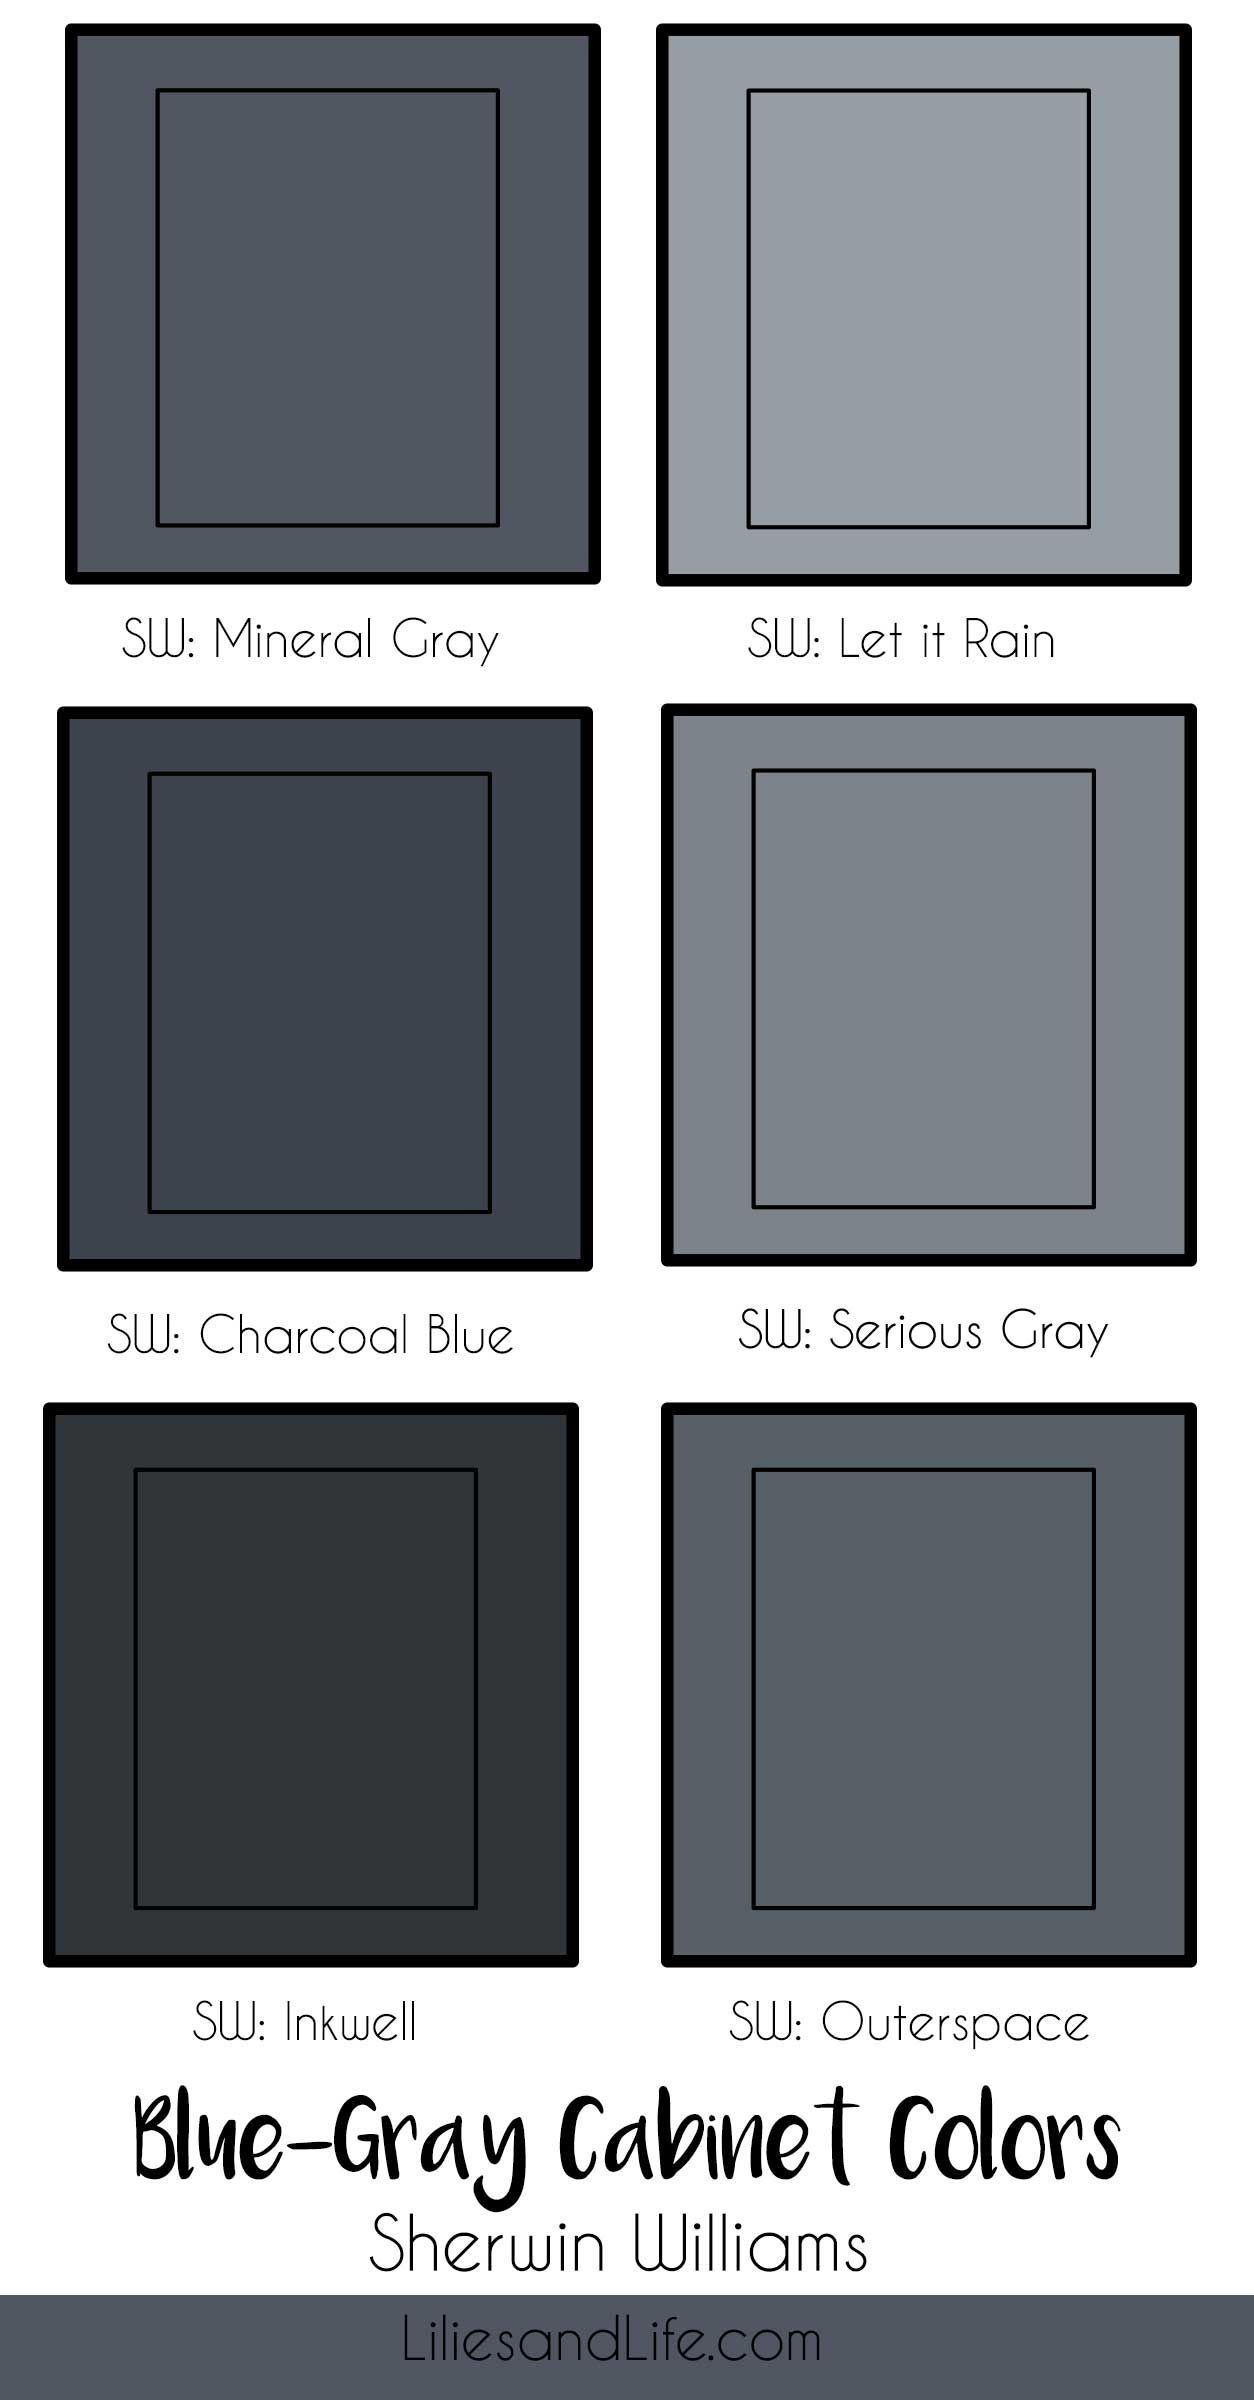 Blue-Gray-Cabinet-Colors